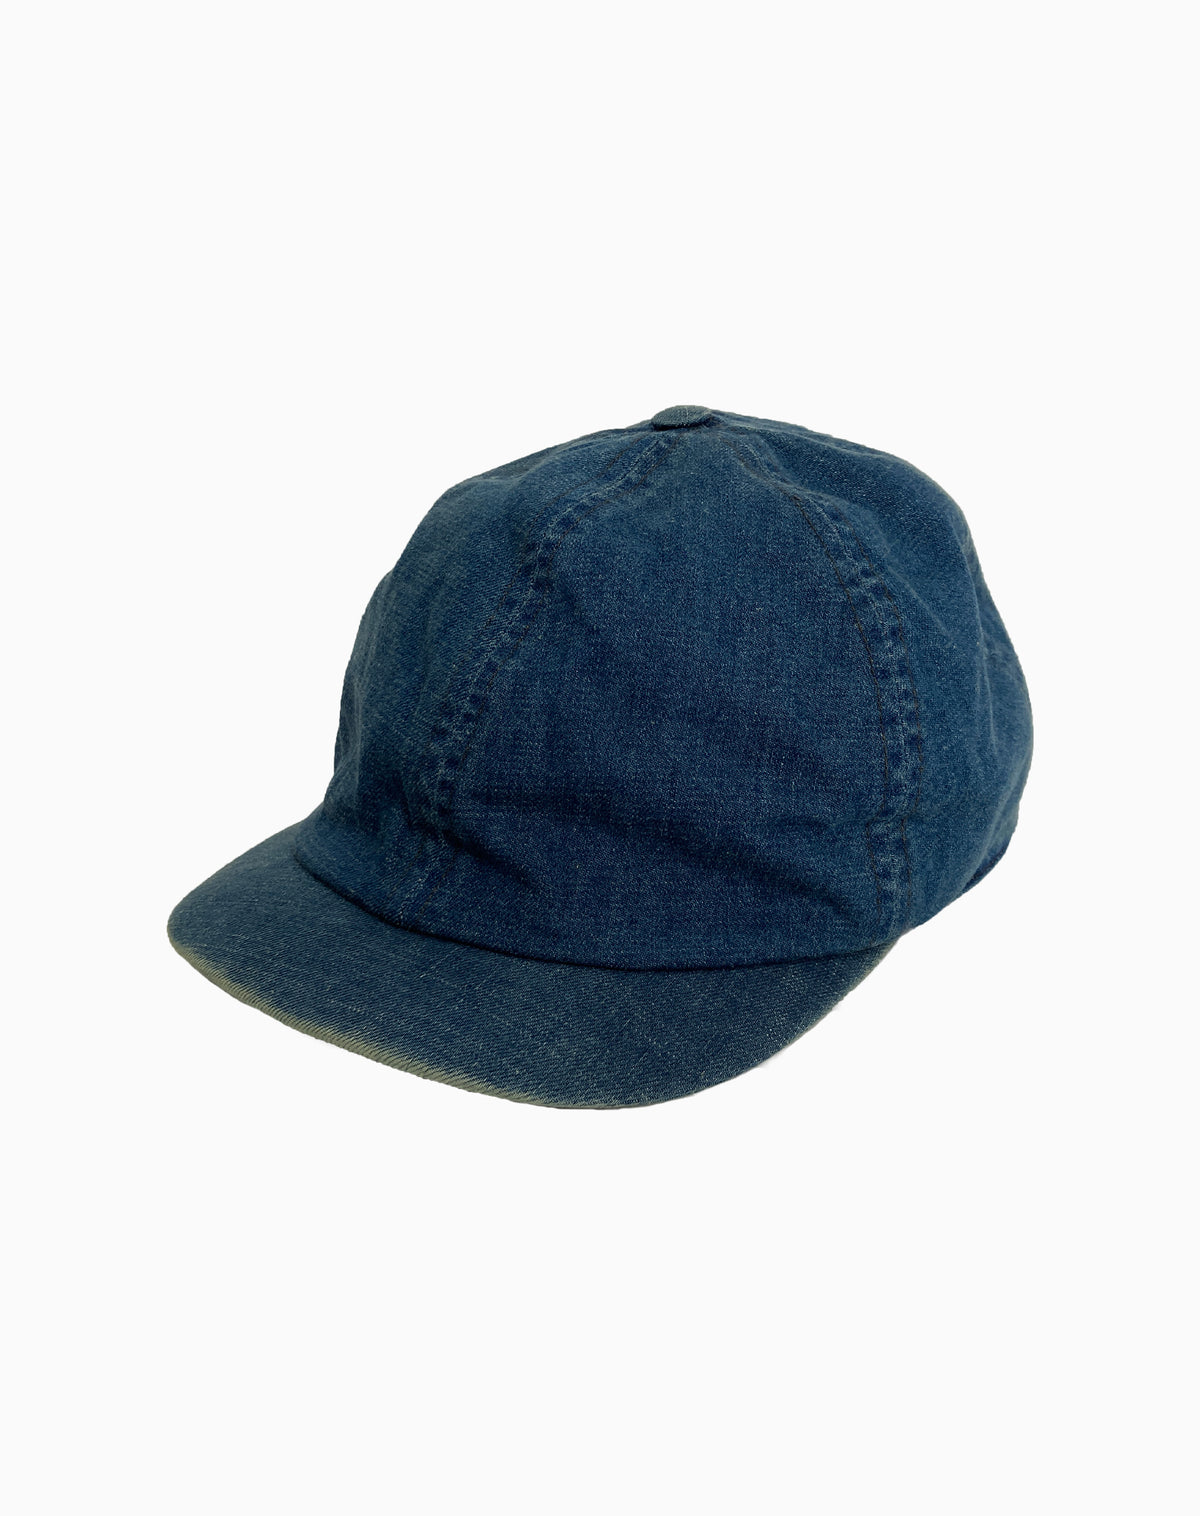 Paperboy Cap in Denim